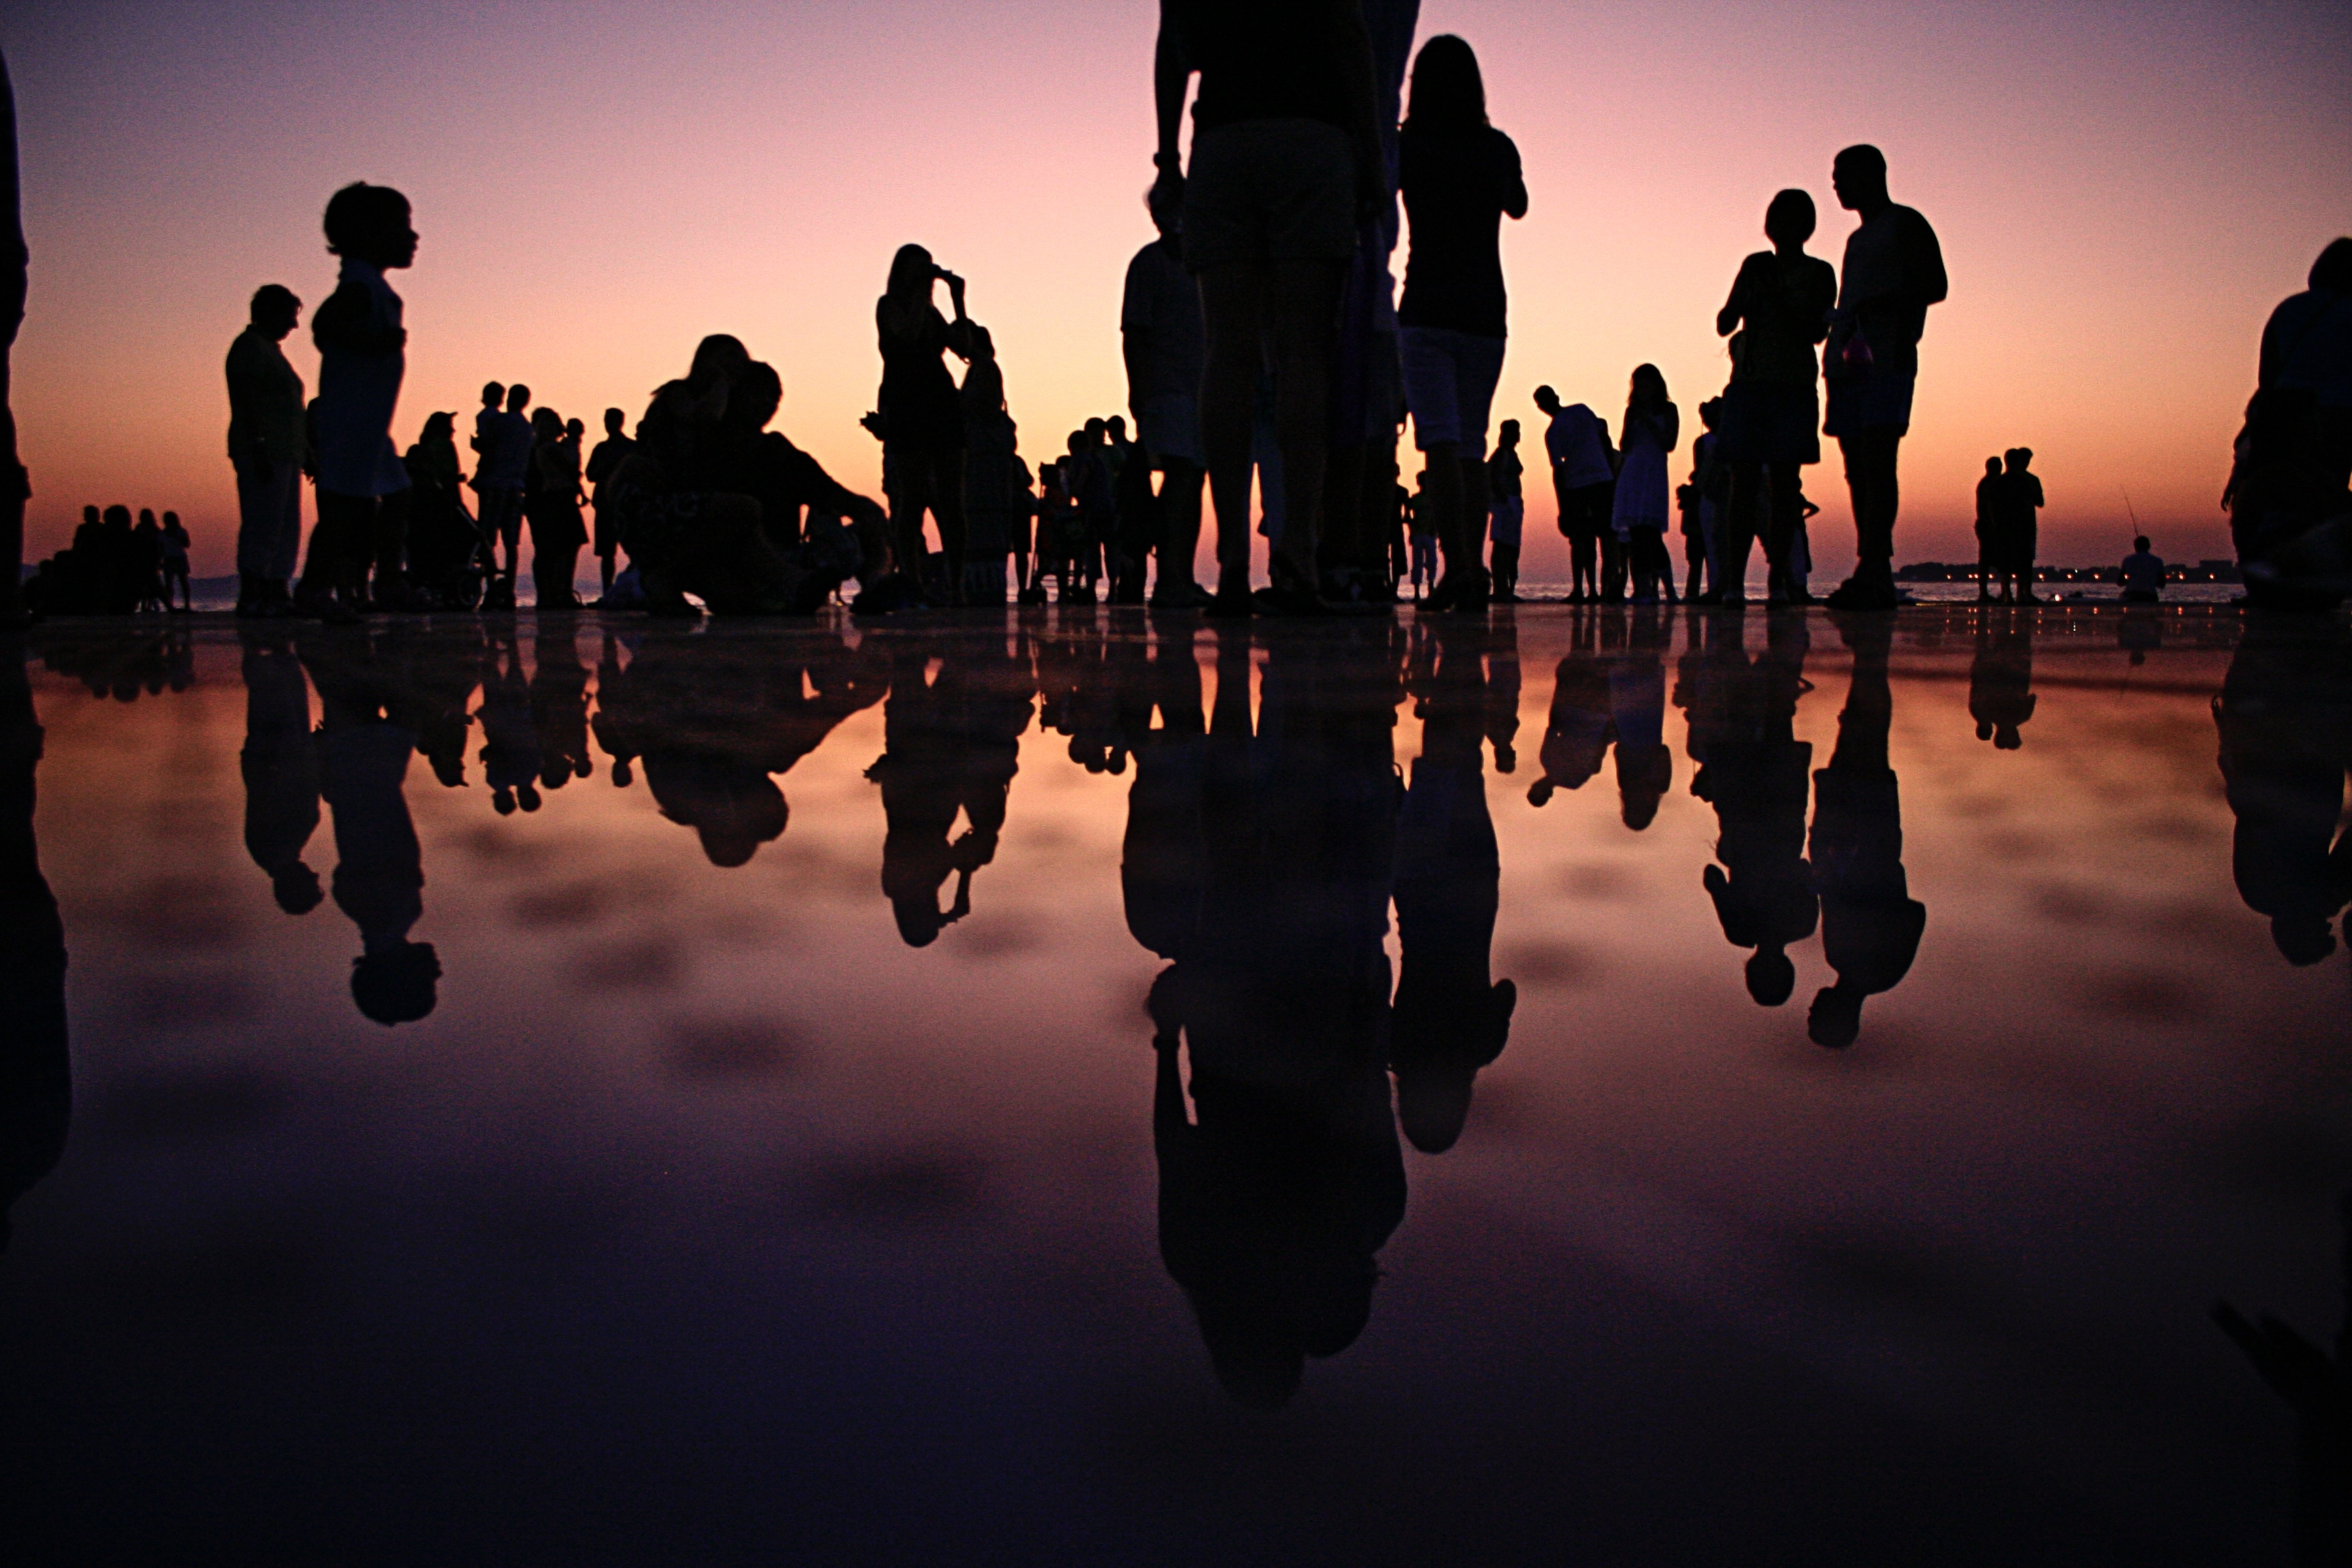 Silhouetted people standing on a mirrored surface